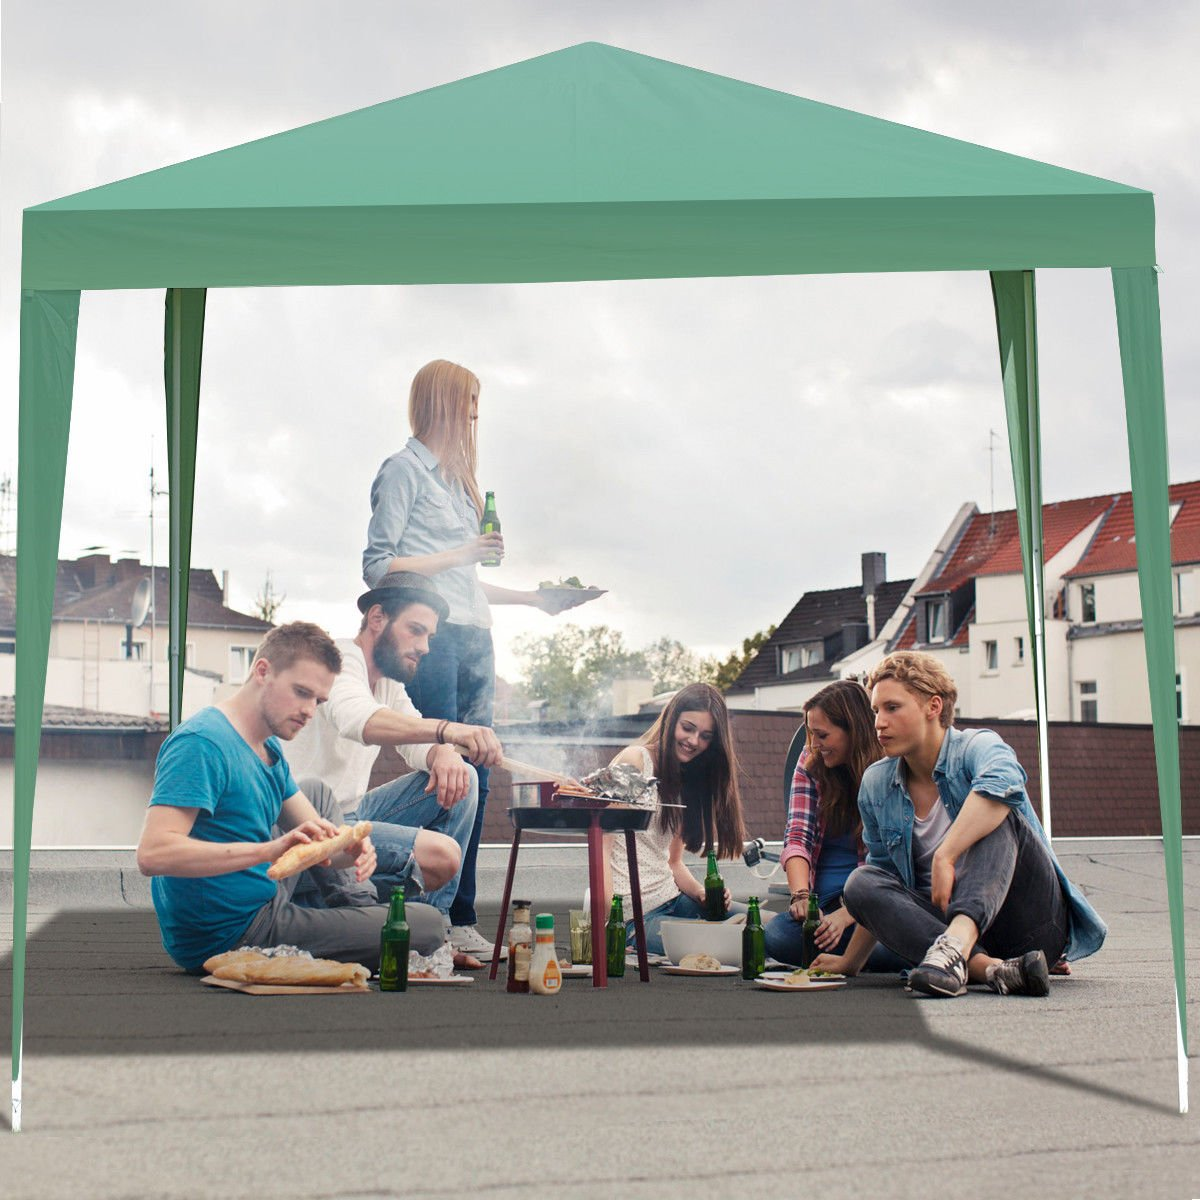 TANGKULA Outdoor Tent 10'X10' EZ Pop Up Portable Lightweight Height Adjustable Study Instant All Weather Resitant Event Party Wedding Park Canopy Gazebo Shelter Tent with Carry Bag (Green)